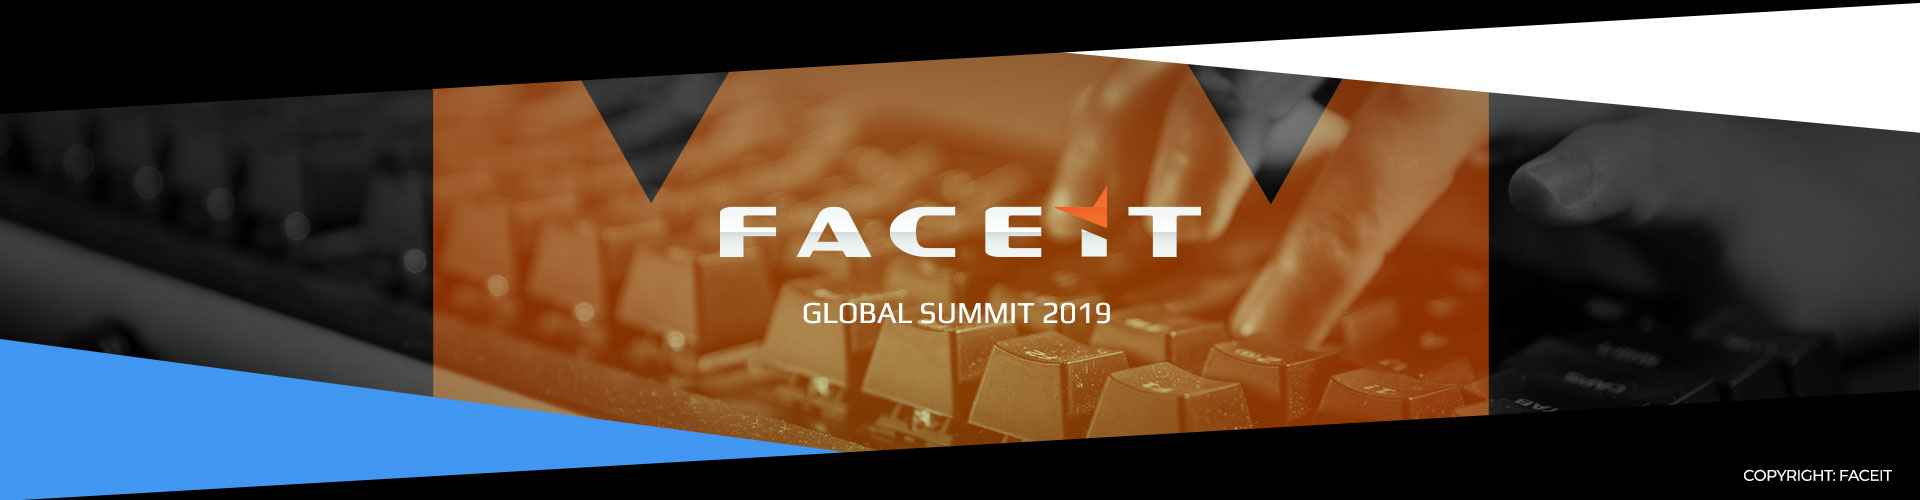 Eventsida om FACE Global Summit och deras turnering i PUBG.